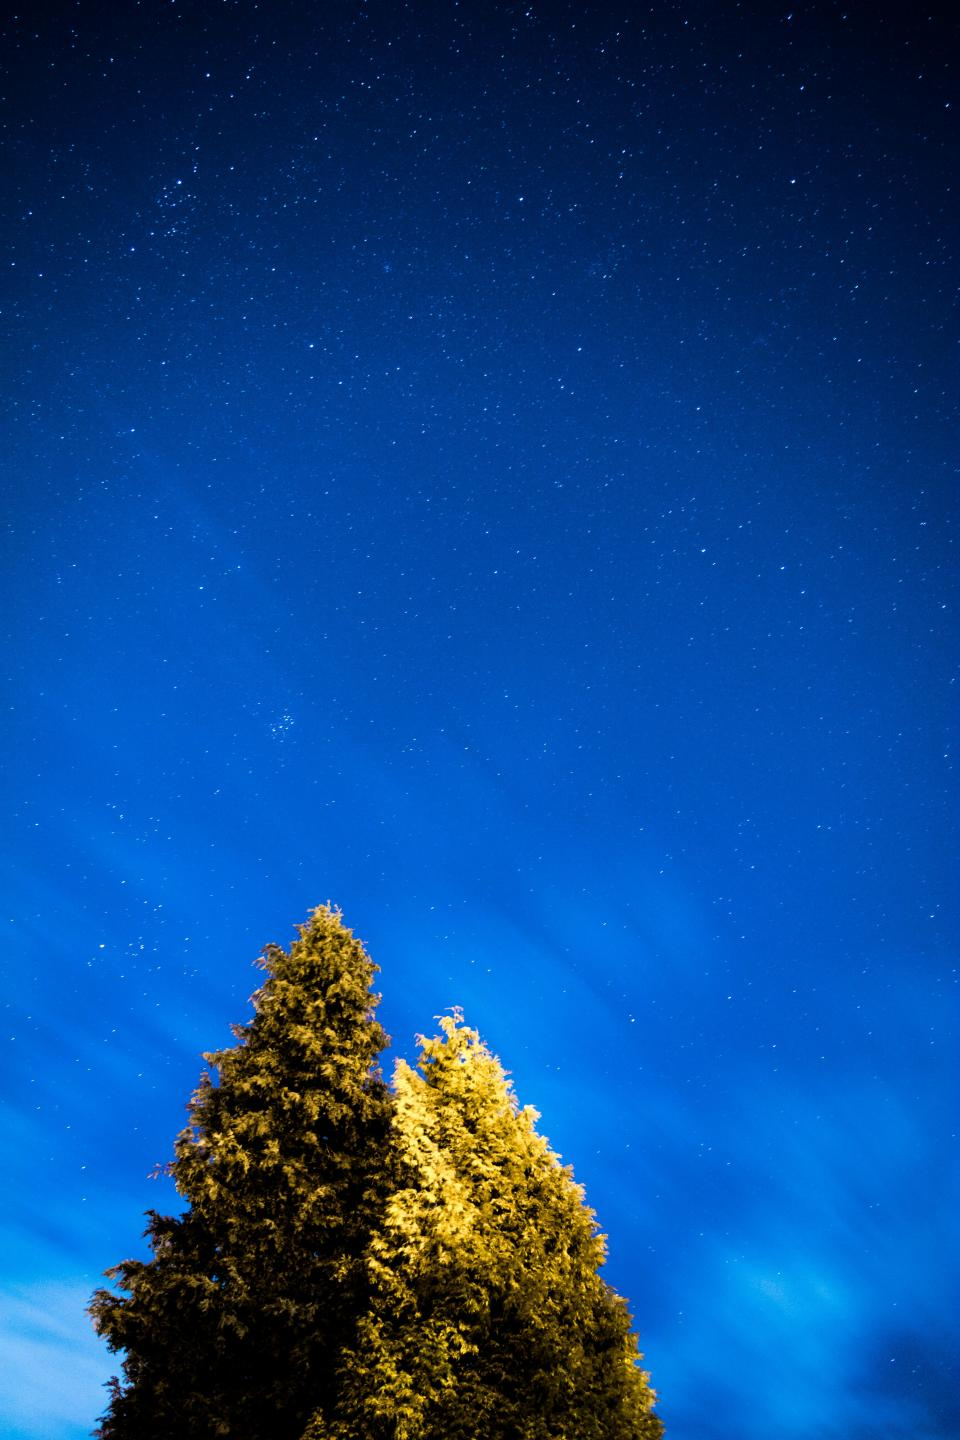 tree plant nature blue sky dark night